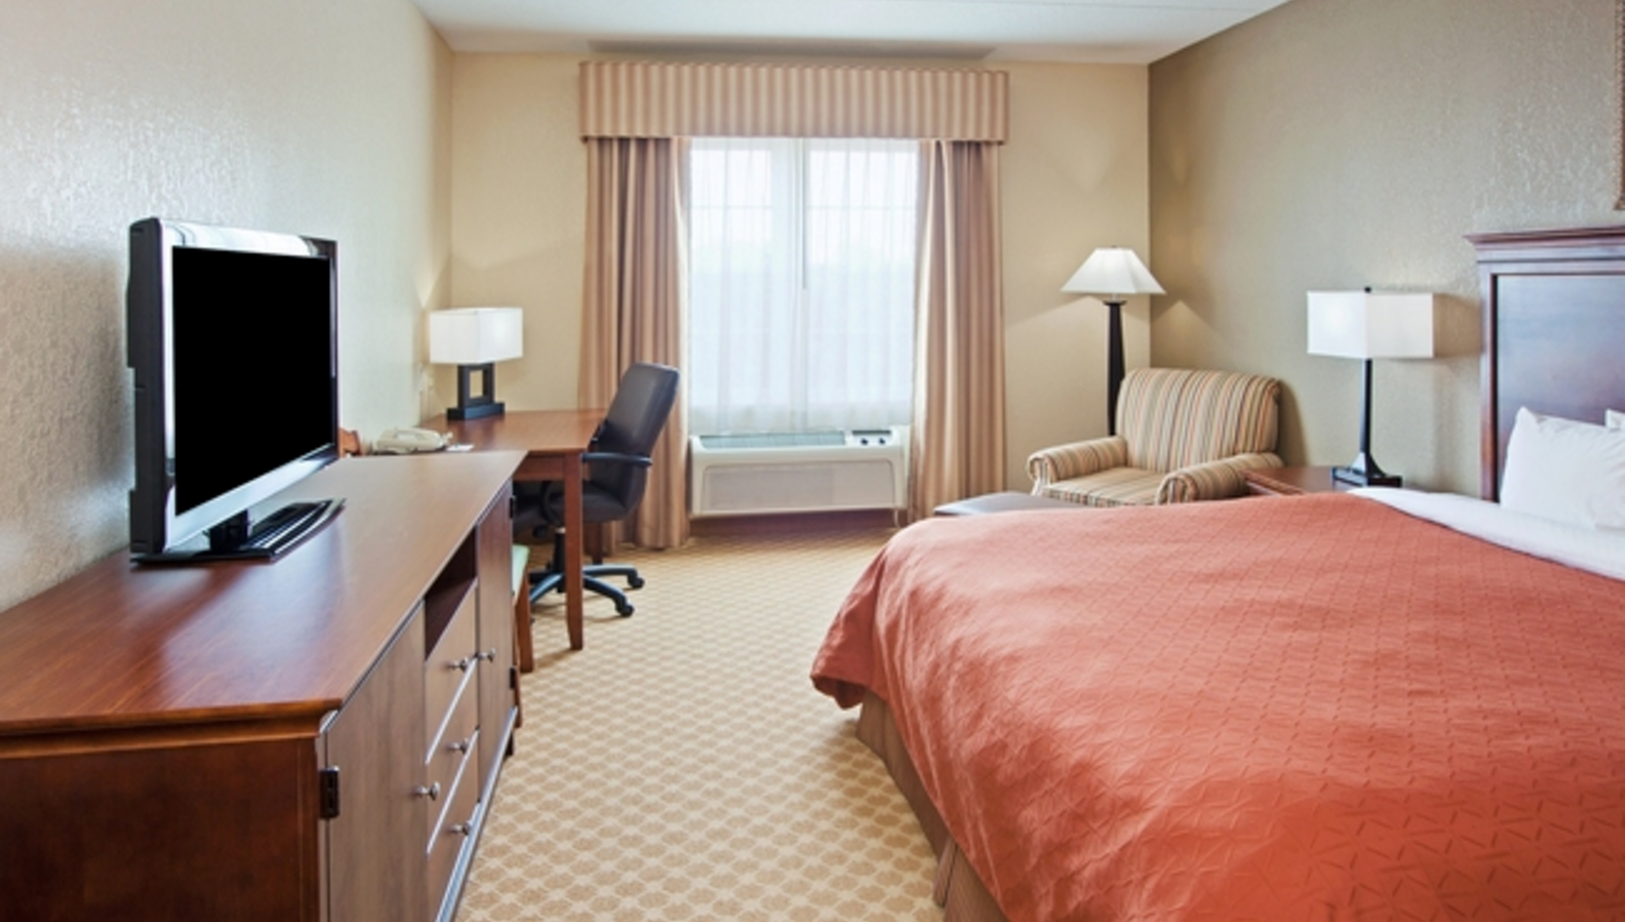 Country Inn & Suites by Radisson Knoxville West TN Reviews